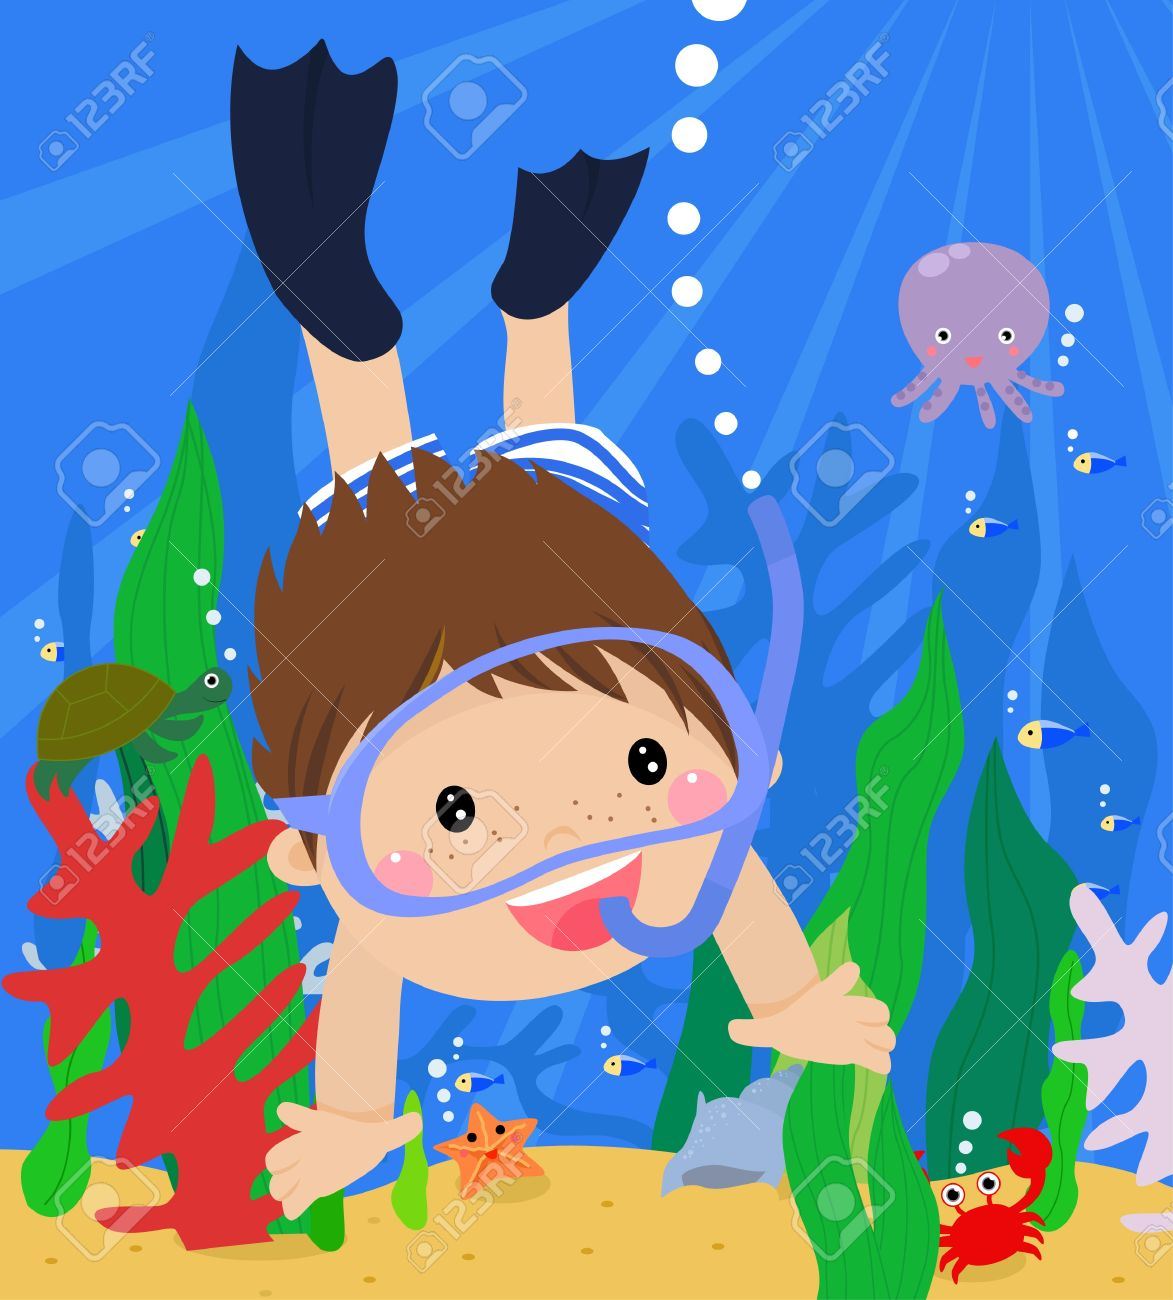 833 Swimmer Underwater Stock Vector Illustration And Royalty Free.